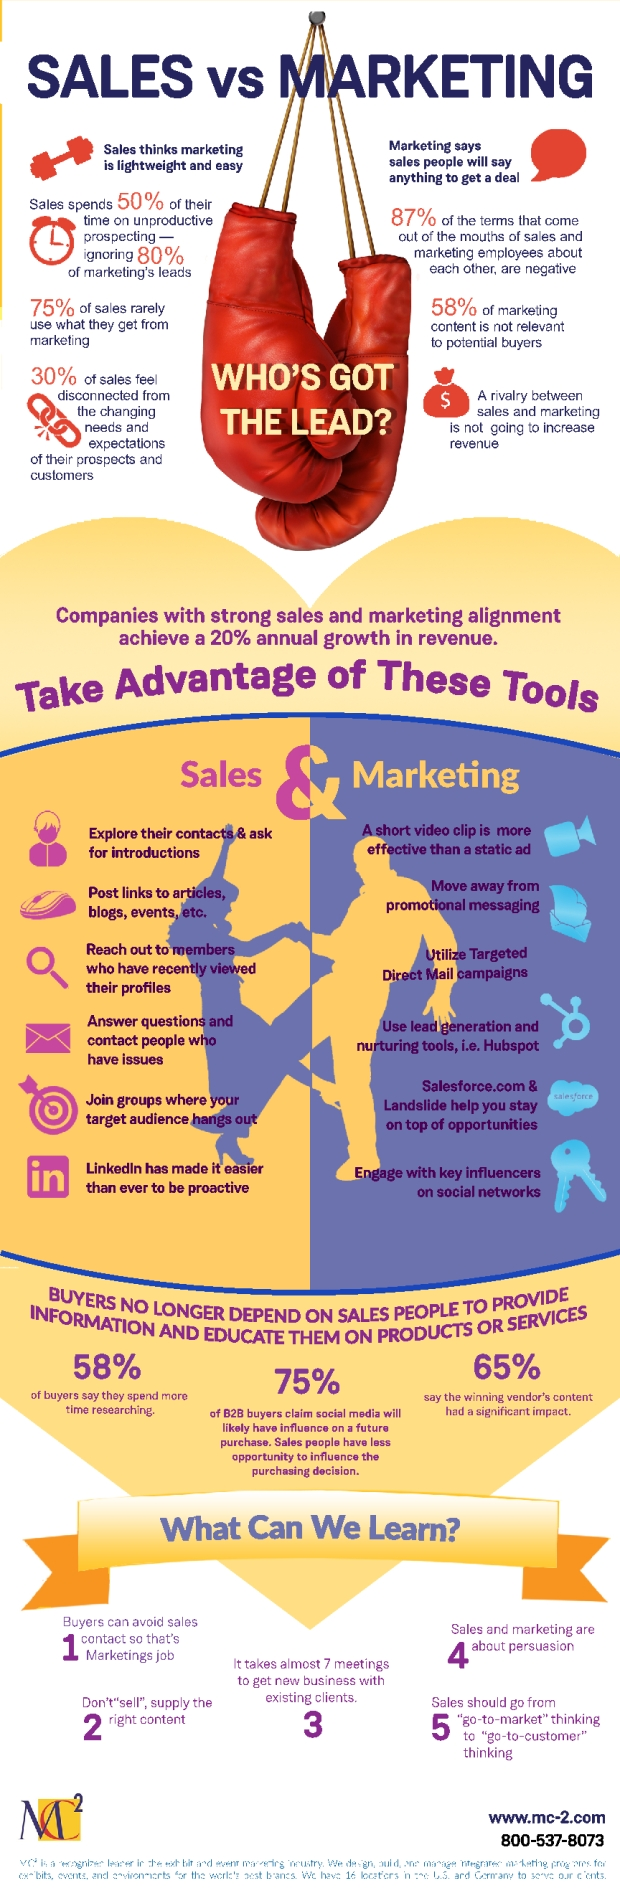 MC2_Sales_vs_Marketing_Infographic-cmm